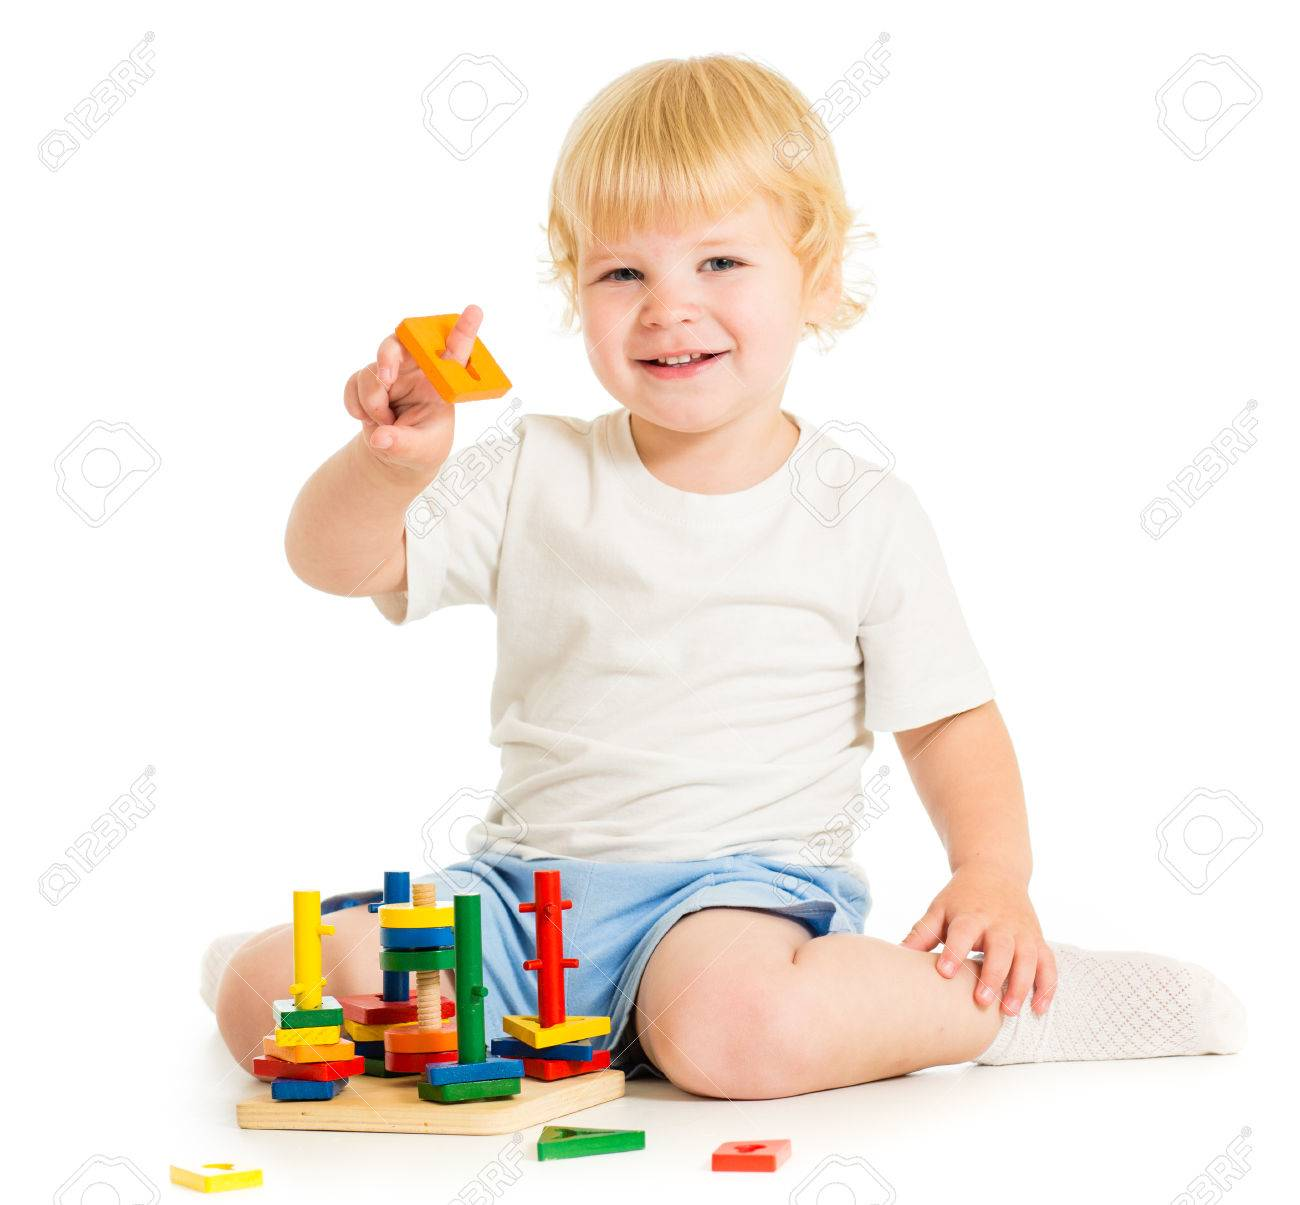 happy kid playing education toys Stock Photo - 22244424